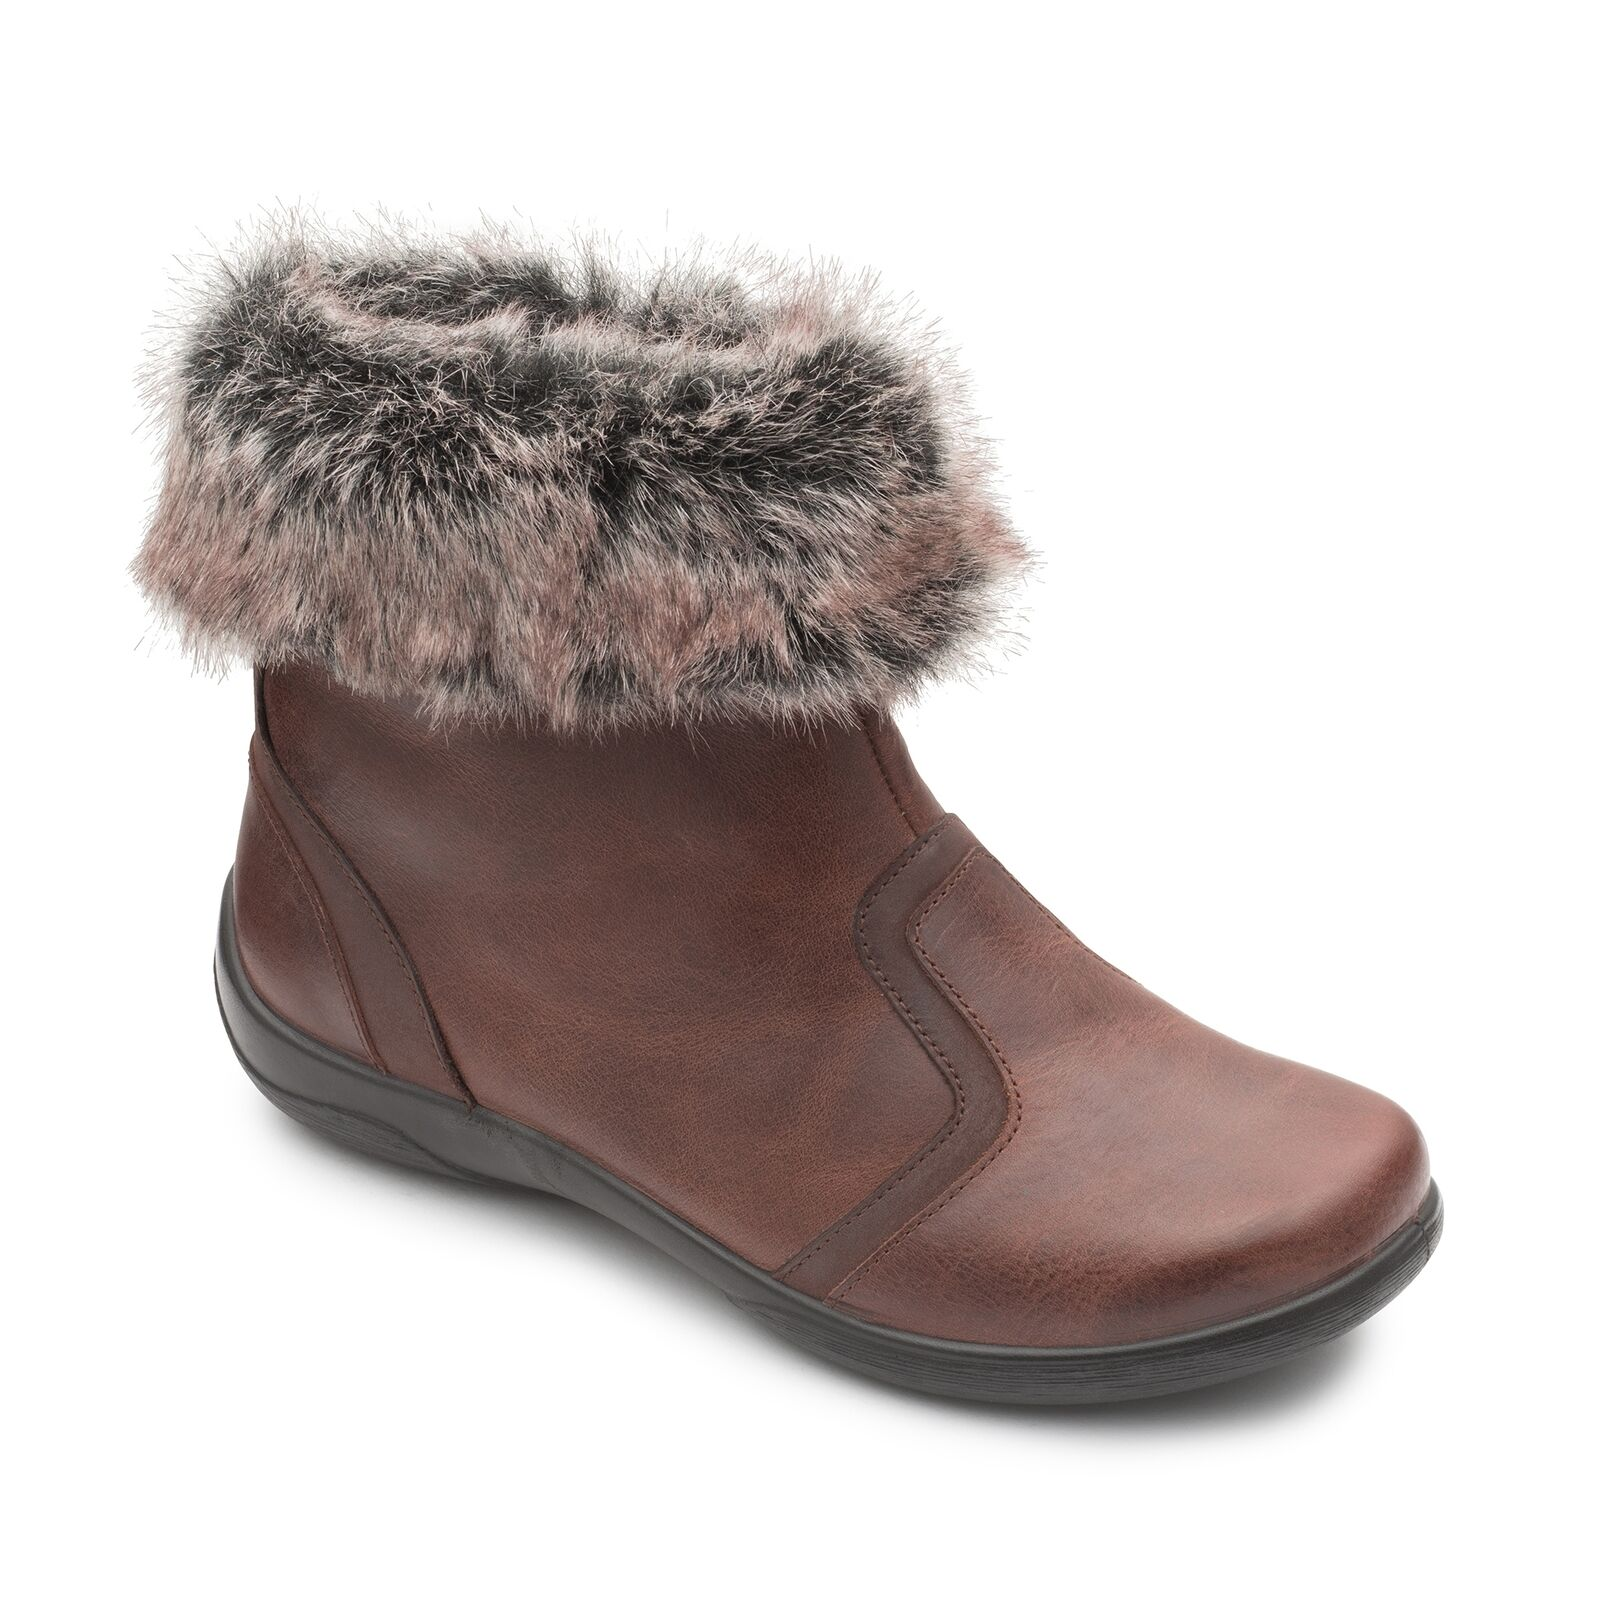 Padders CLARINET Ladies Leather Extra Wide (2E 3E) Cosy Warm Ankle Boots Brown